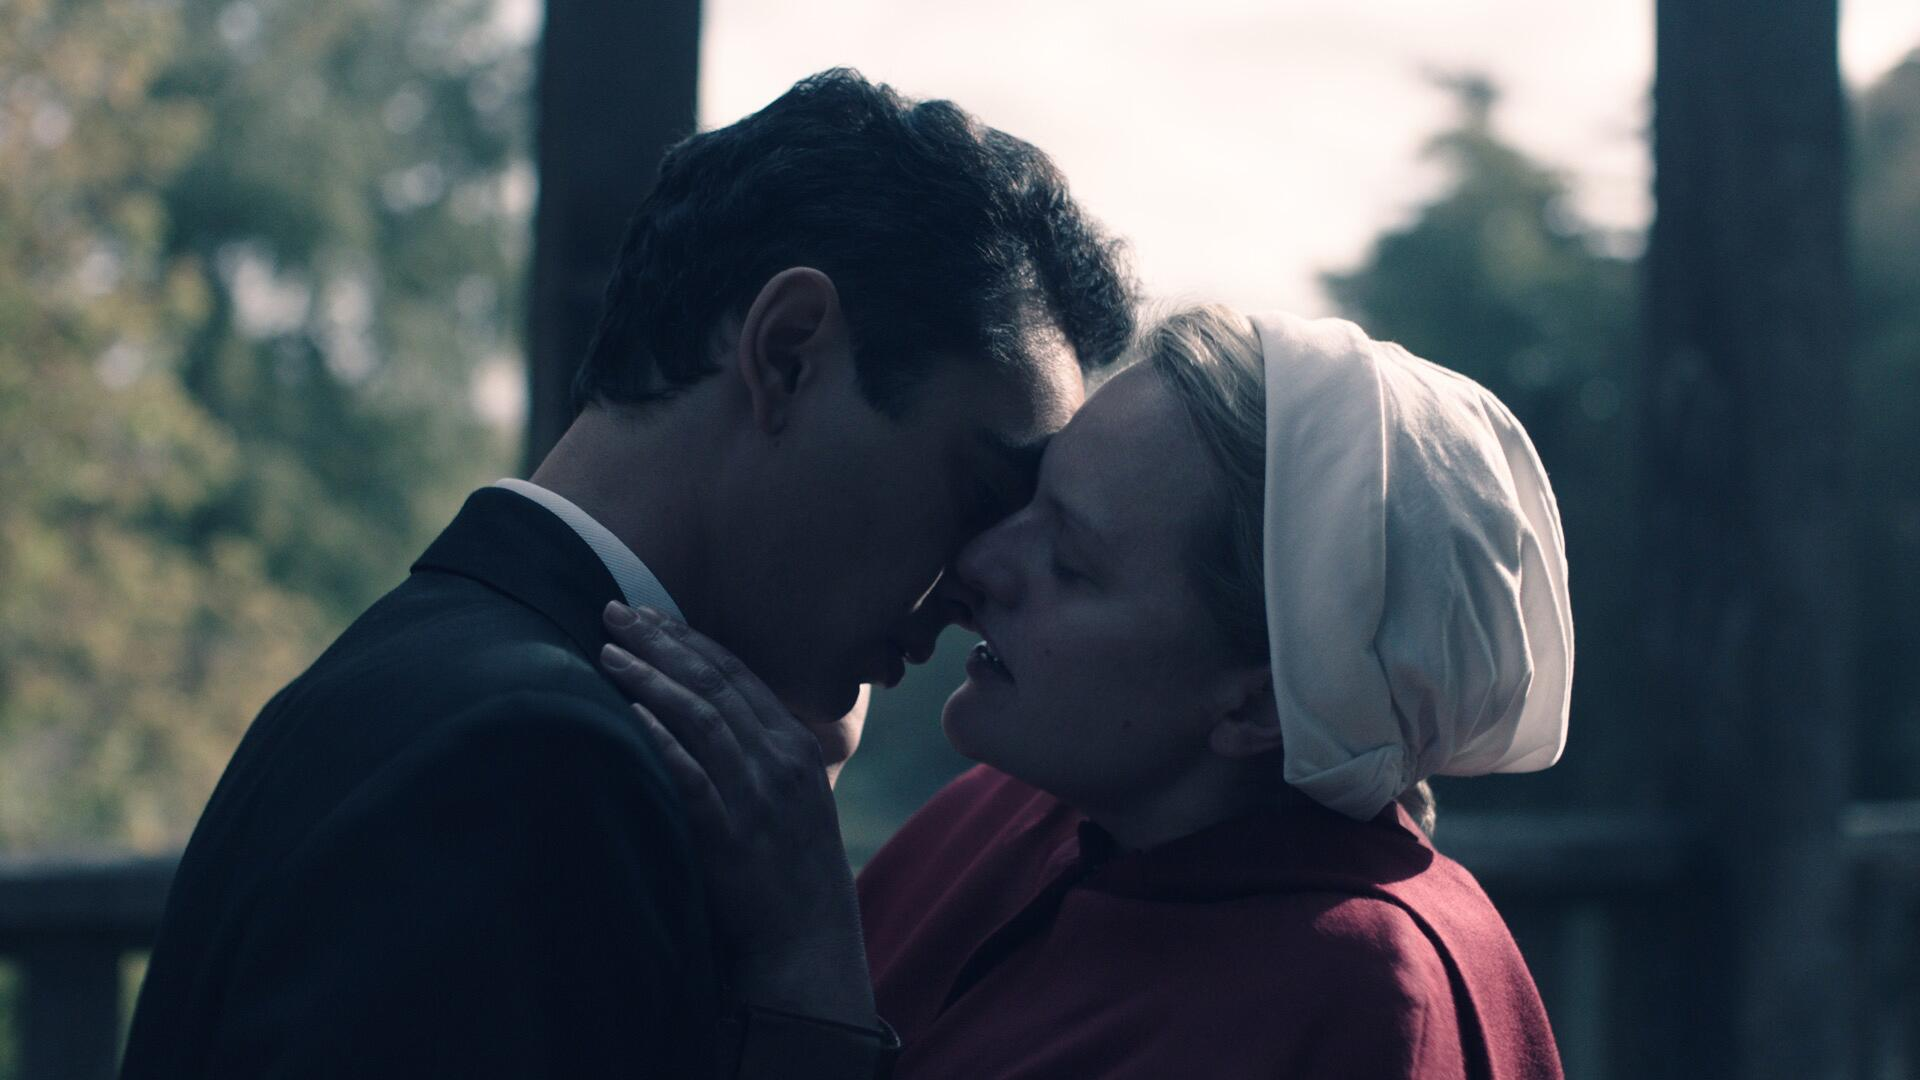 Max Minghella and Elisabeth Moss in season 4 episode 3 of 'The Handmaid's Tale'